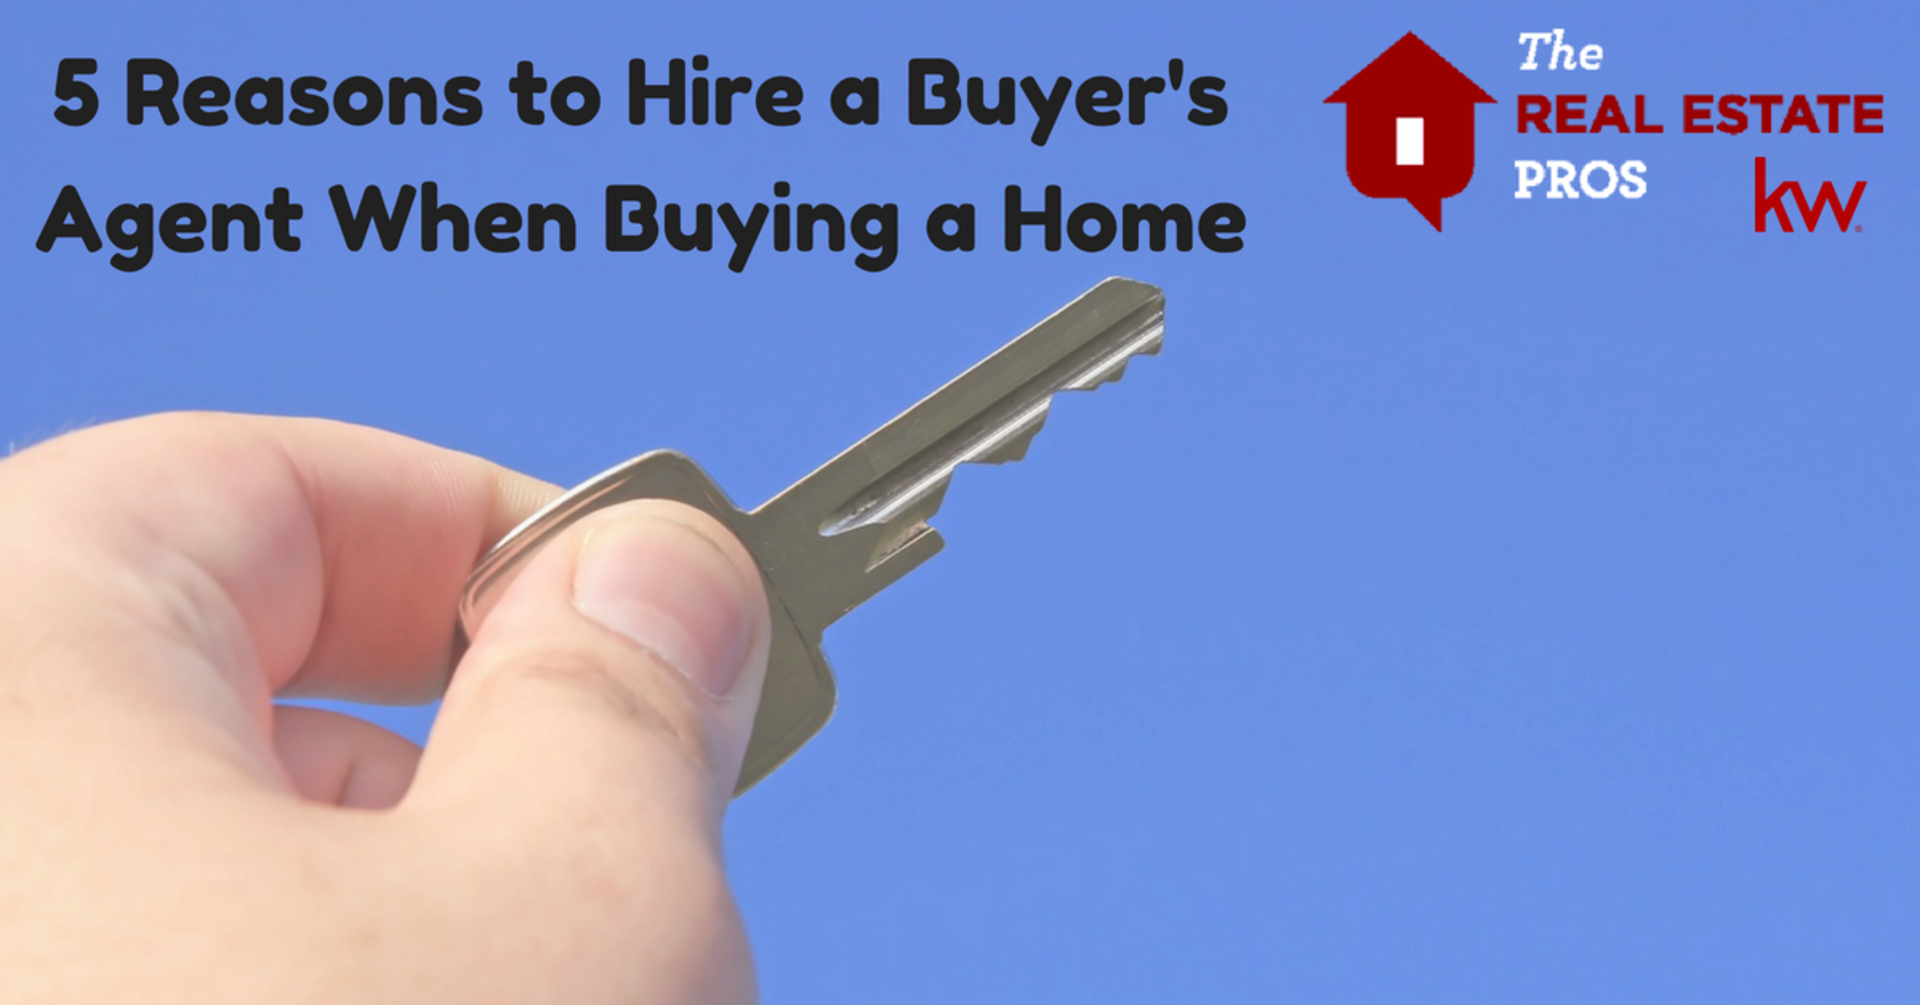 5 Reasons to Hire a Buyer's Agent When Buying a Home